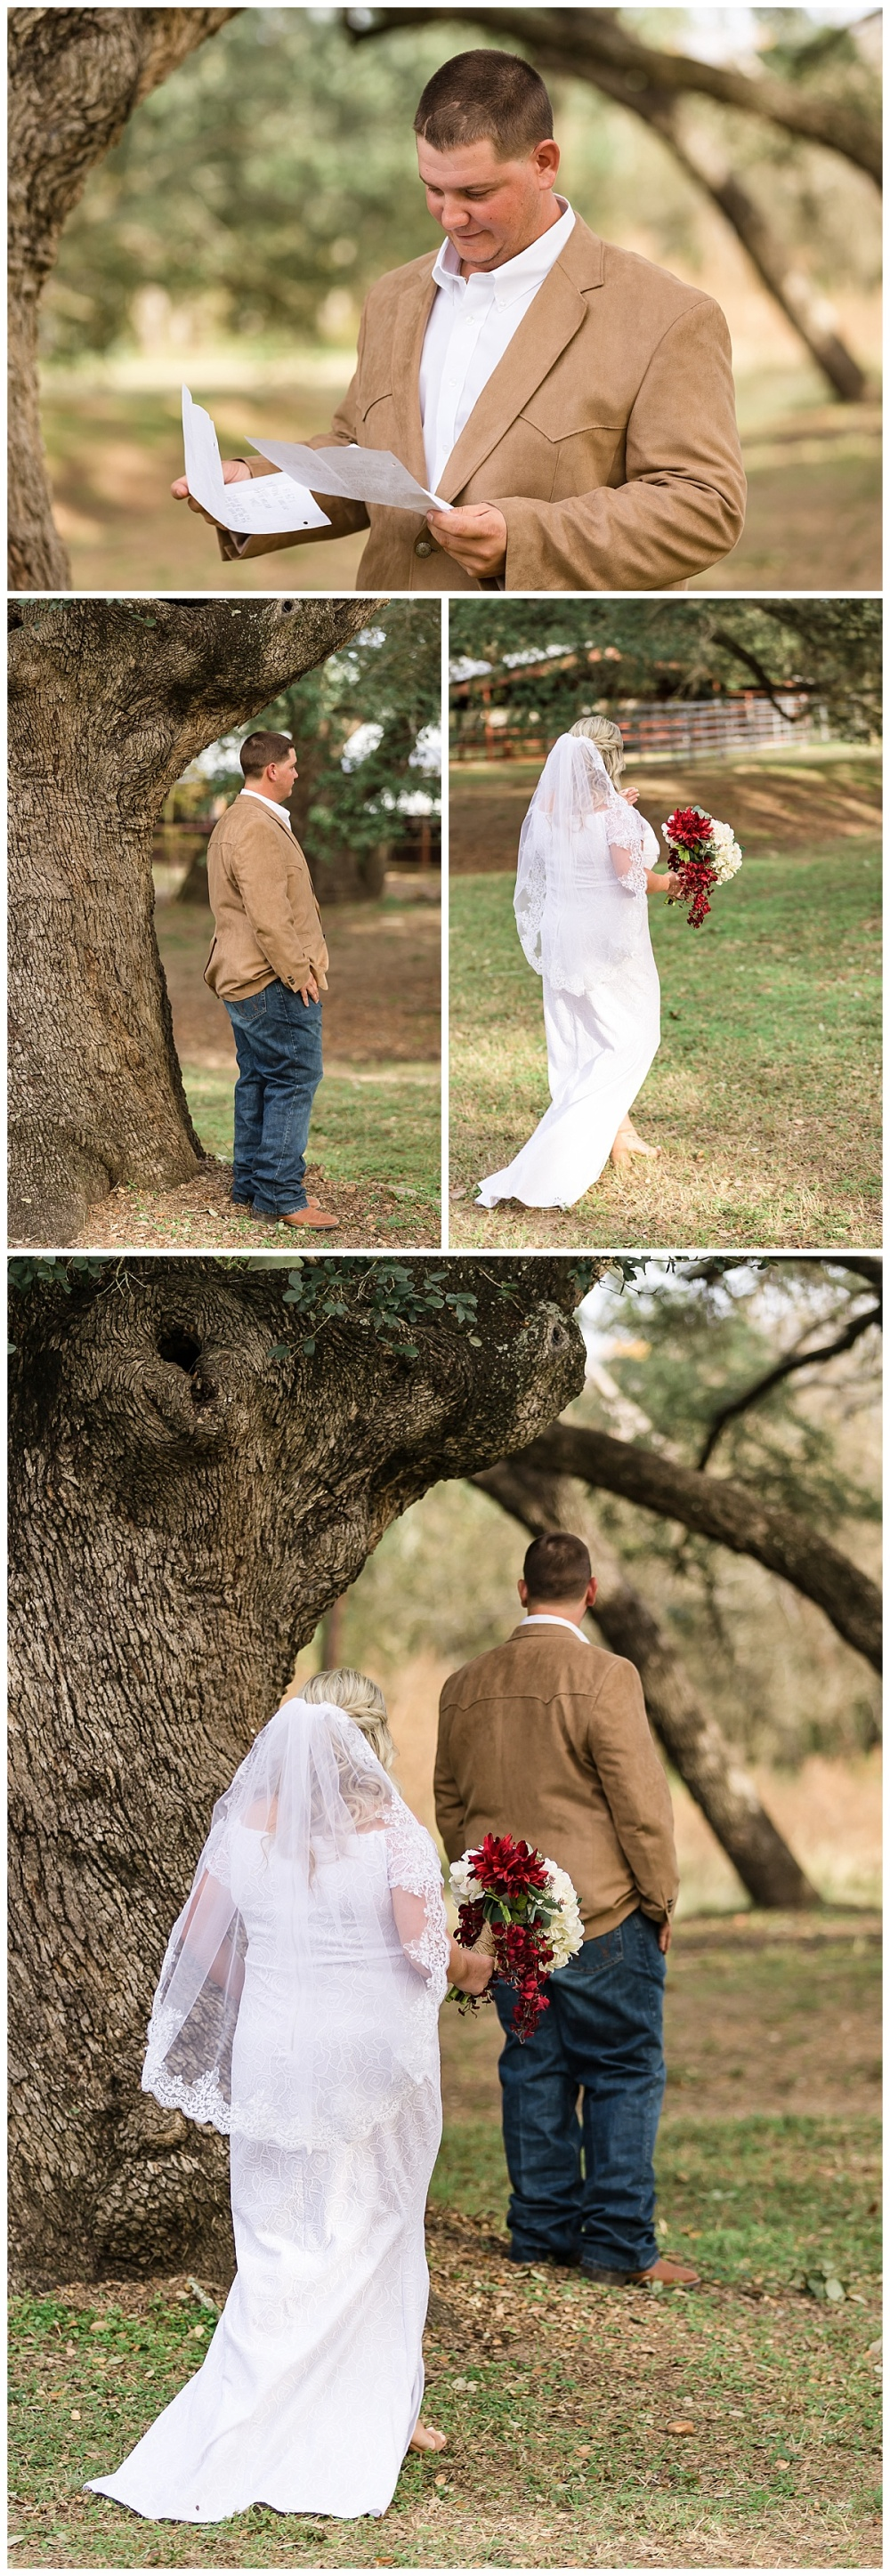 Wedding-Photographer-LaVernia-Texas-Ceremony-Under-the-Trees-Bride-Groom-Fall-McDonald-Carly-Barton-Photography_0001.jpg